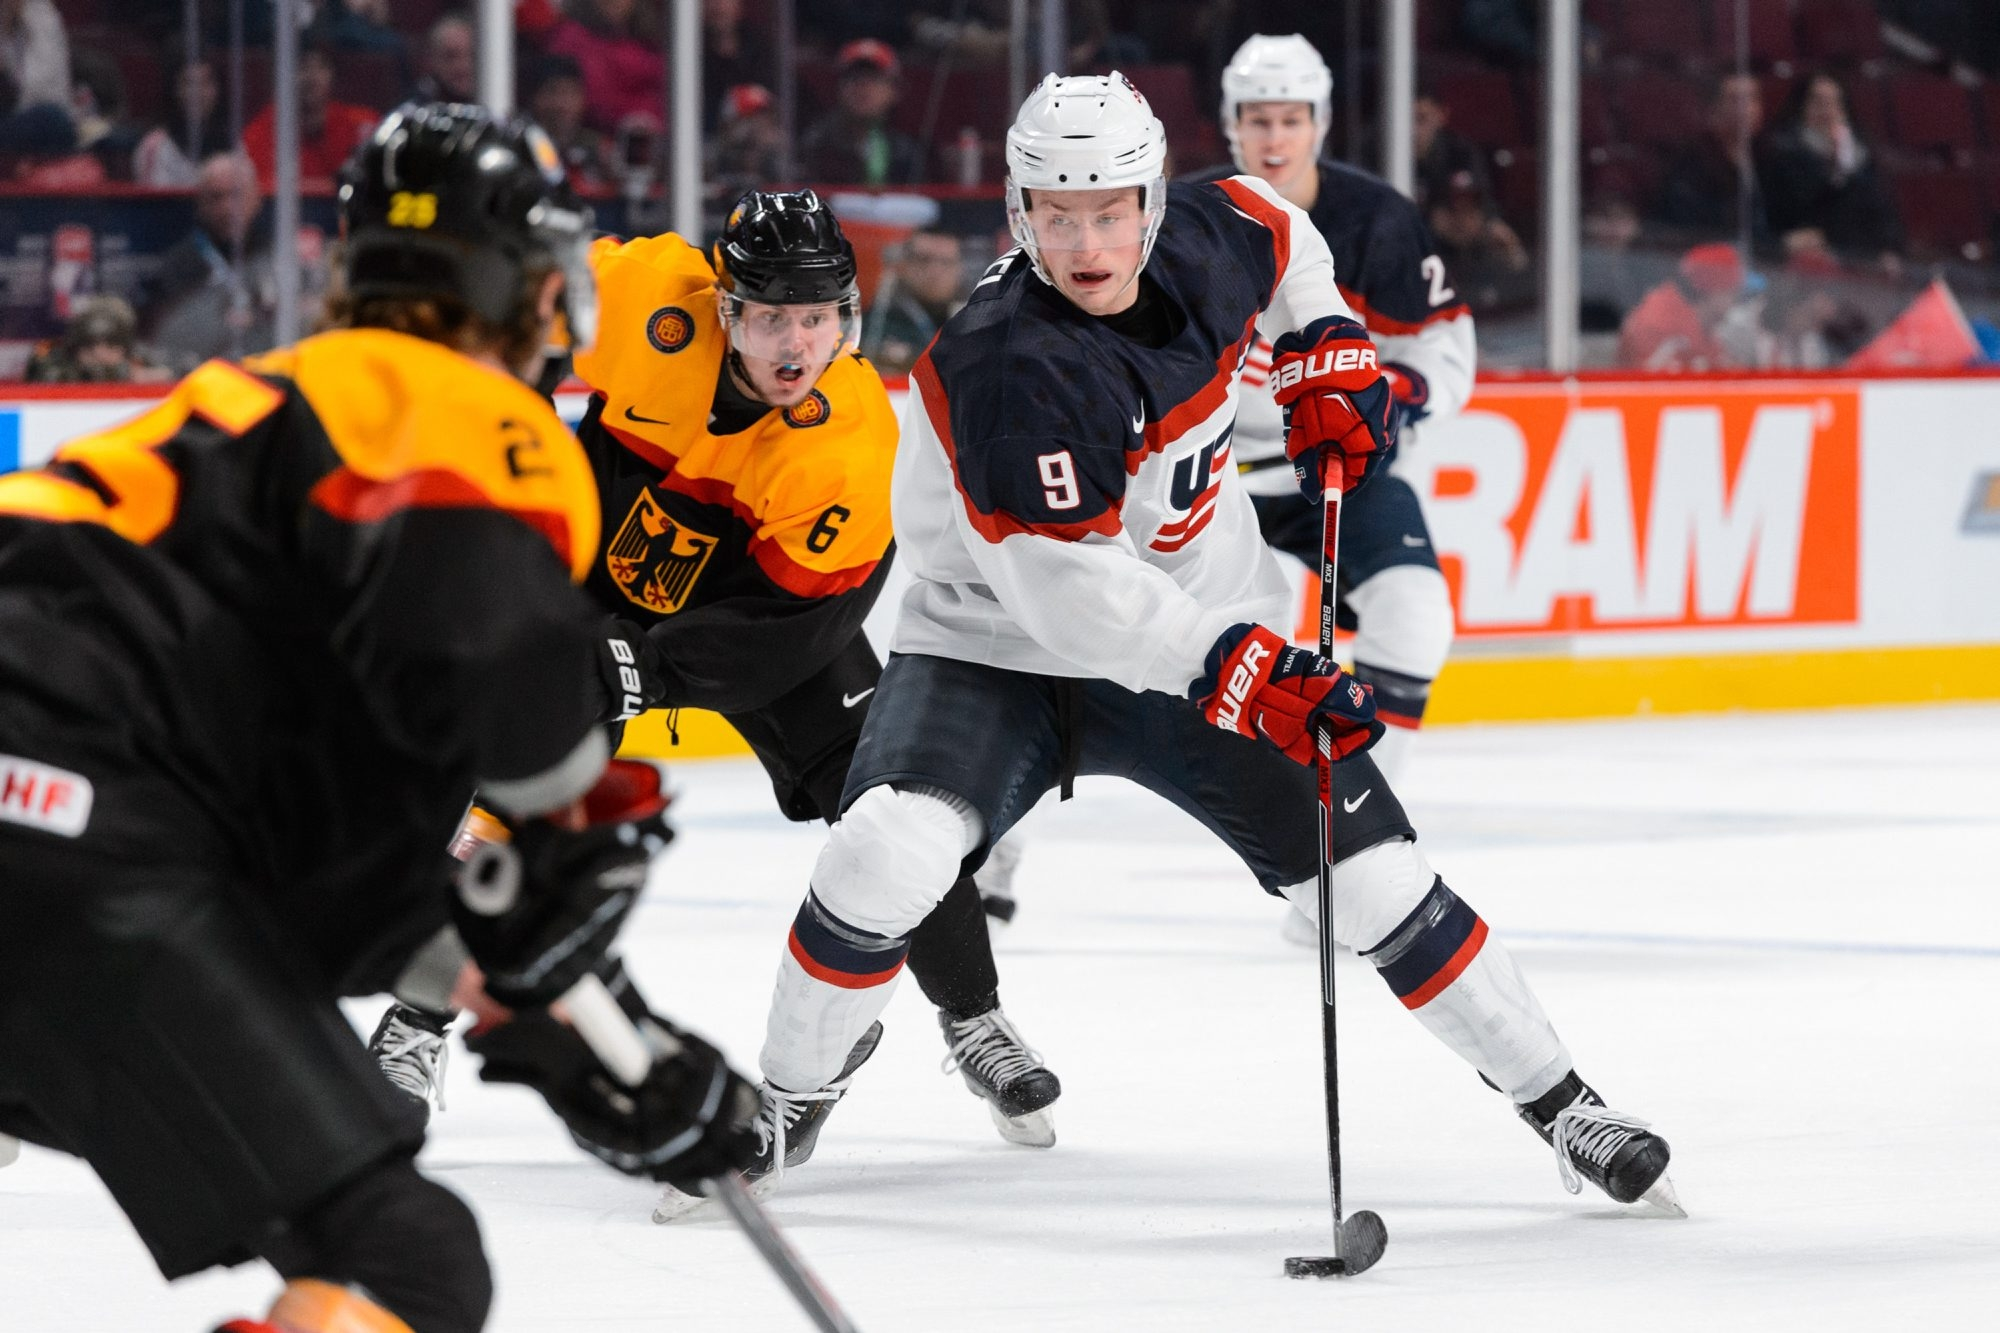 Jack Eichel plays the puck during the 2015 IIHF World Junior Hockey Championships -- one of five international tournaments he has already participated in -- last December in Montreal.  (Getty Images)